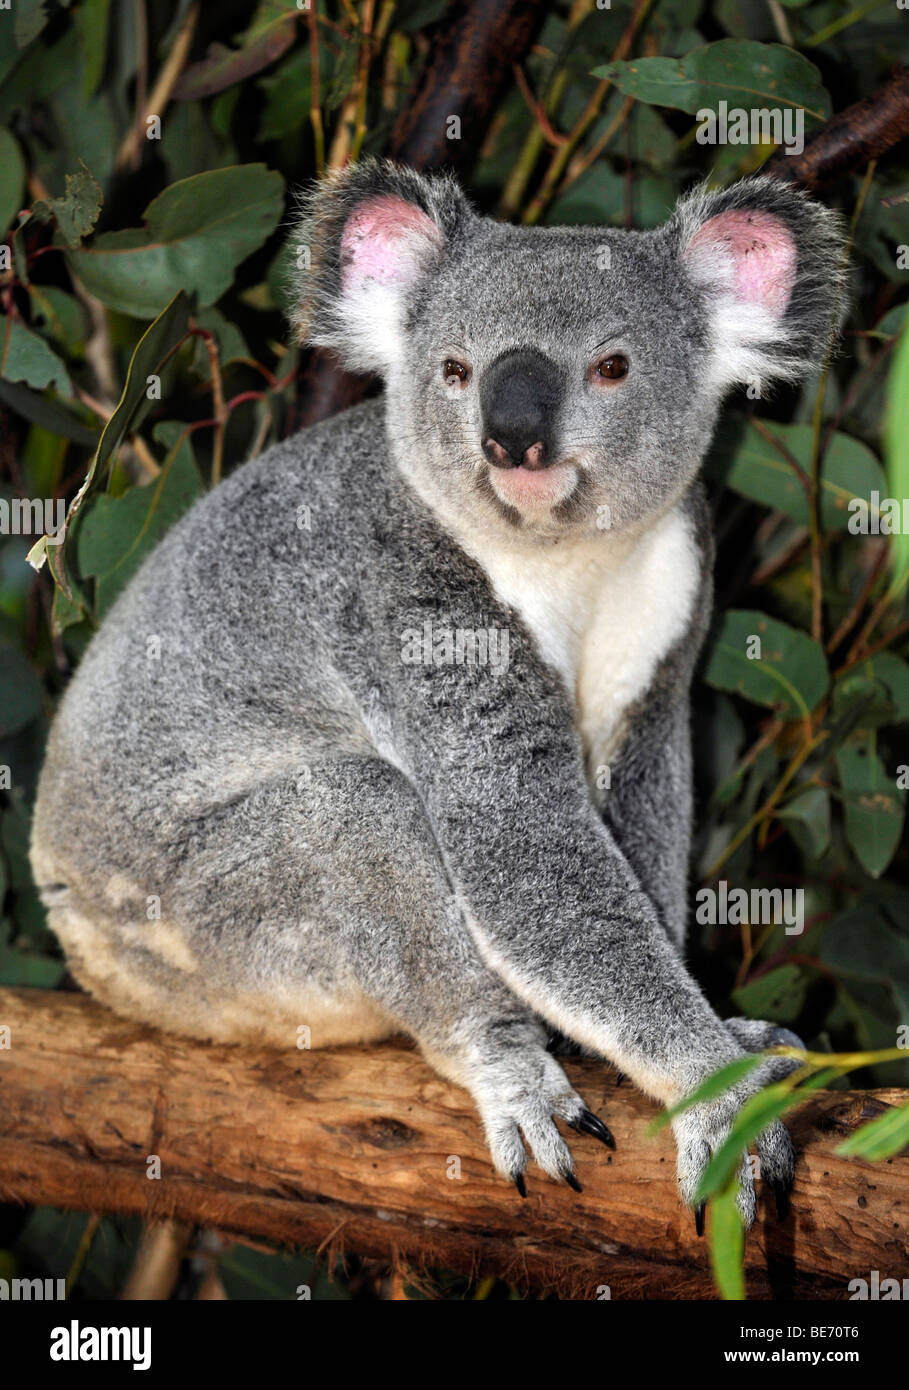 Koala (Phascolarctos cinereus) in eucalypt tree (Eucalyptus), Queensland, Australia - Stock Image